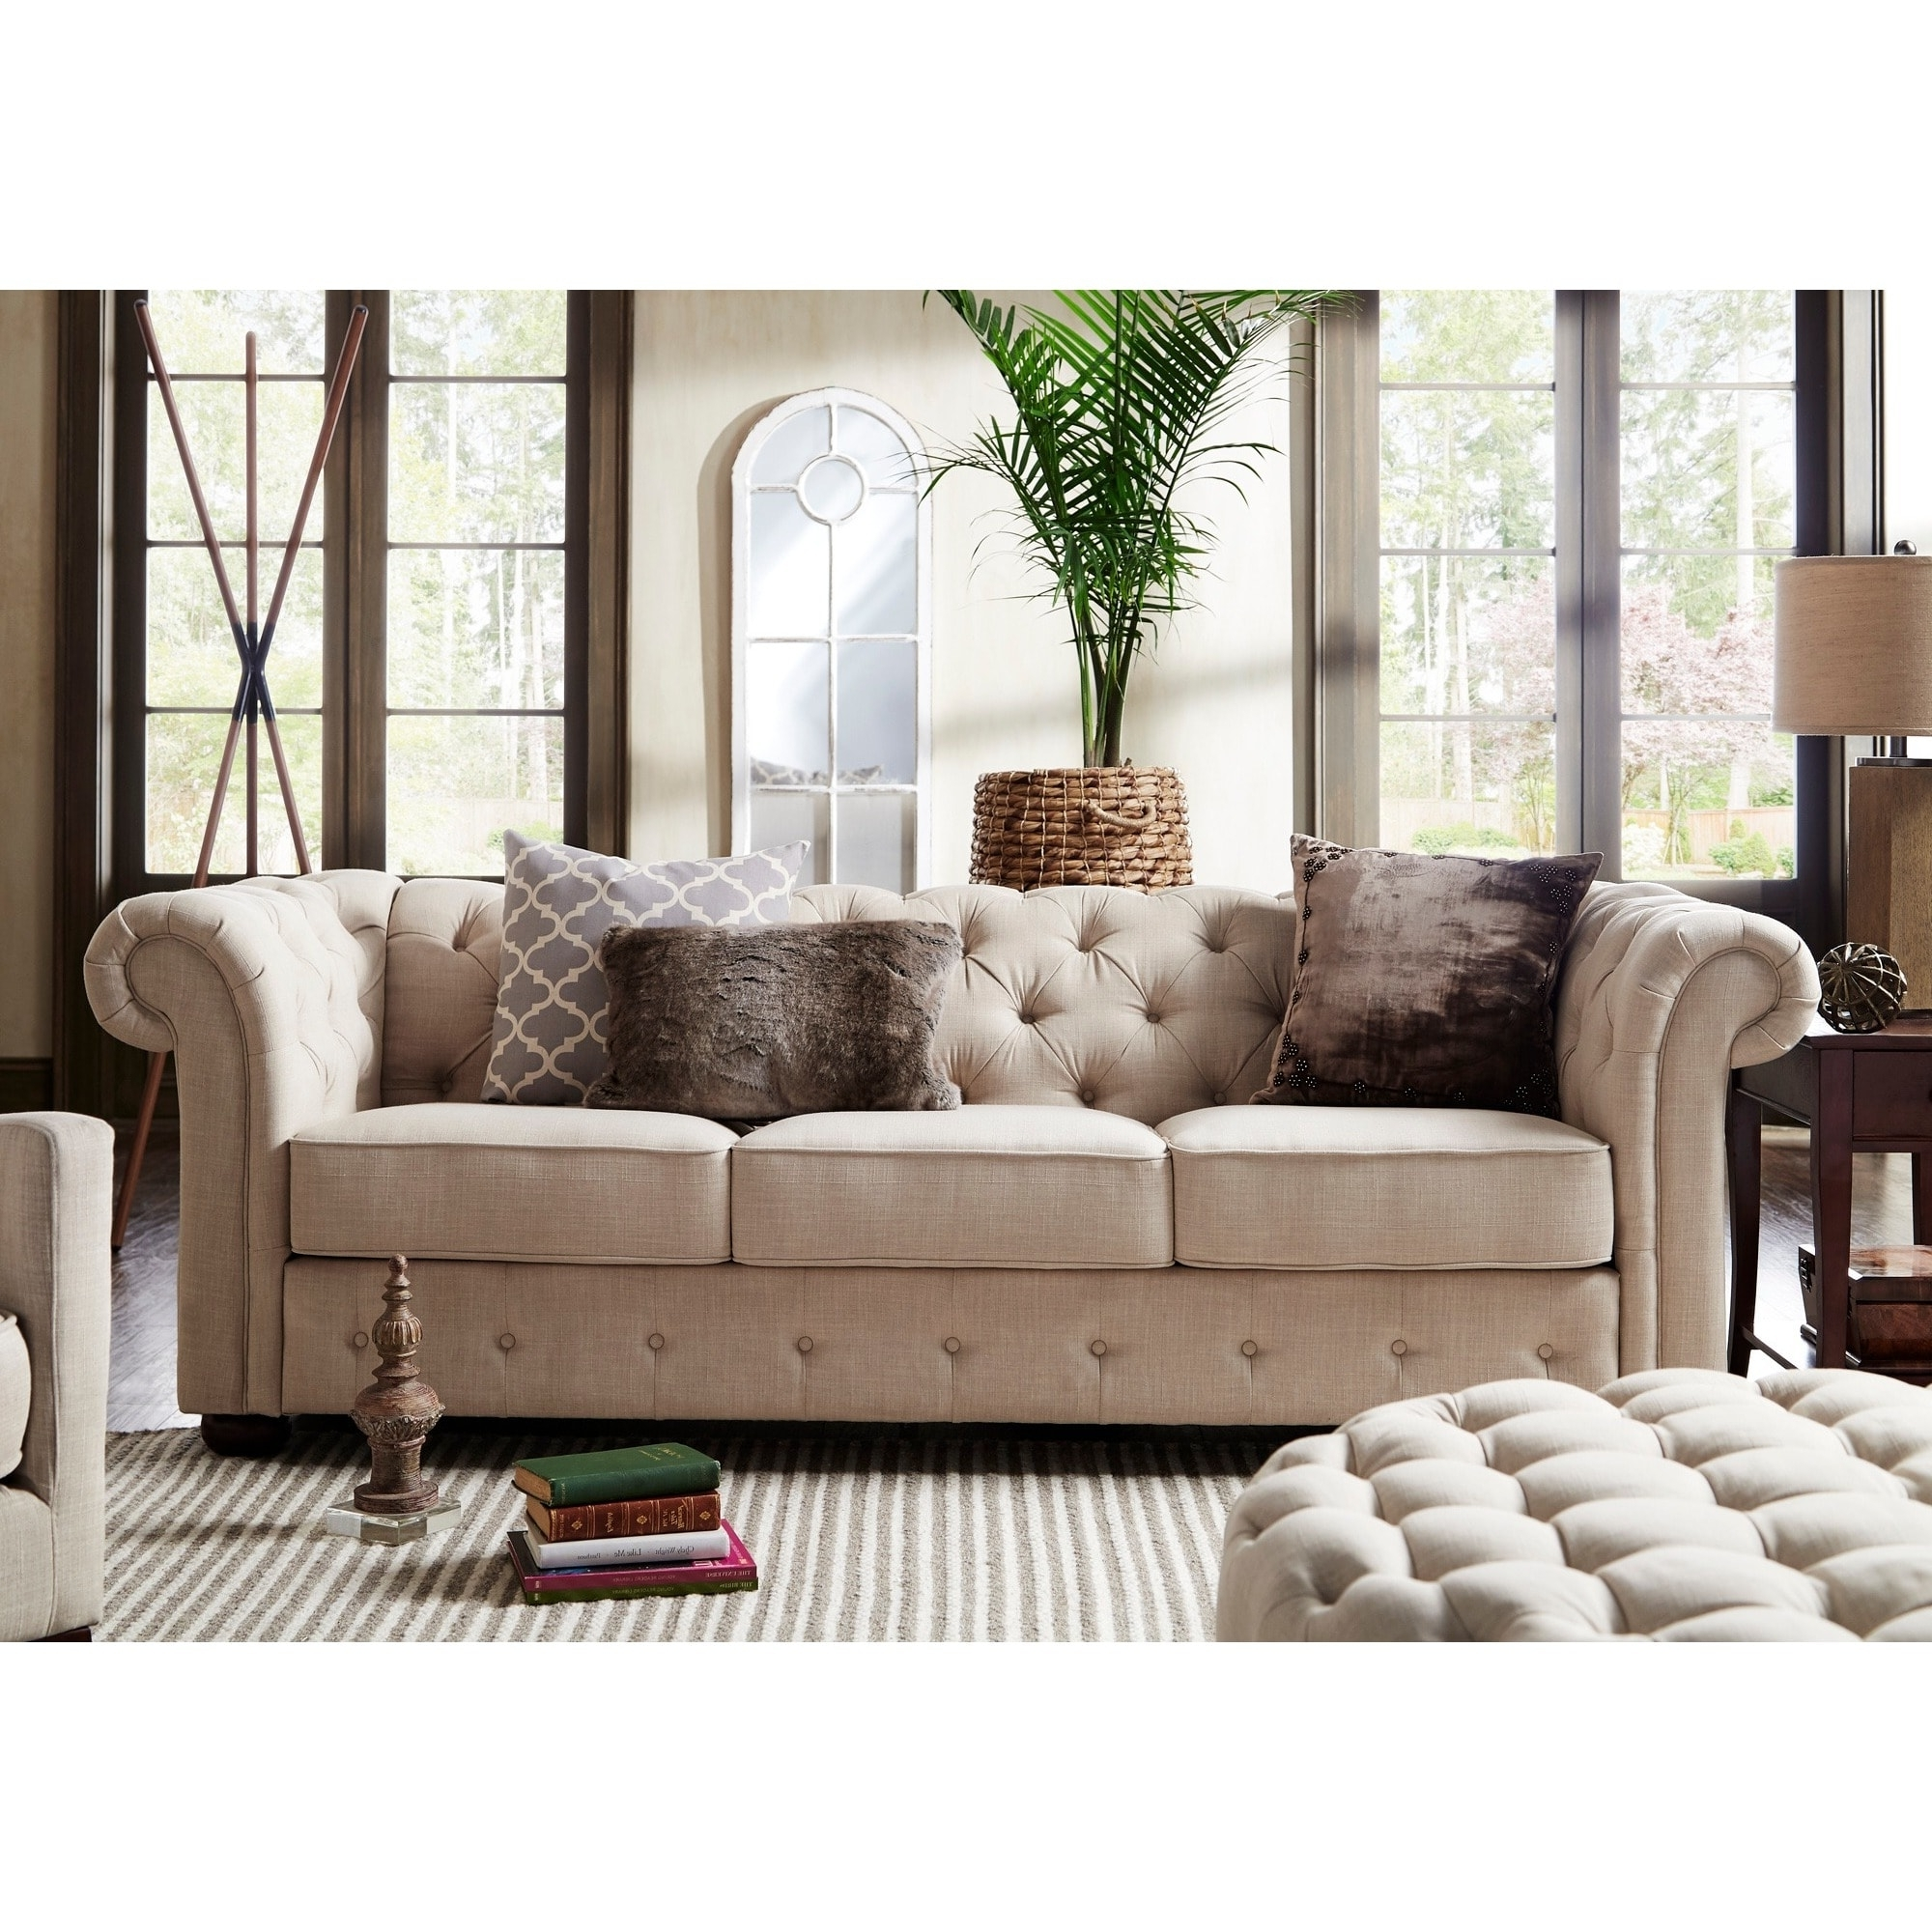 Fashionable Knightsbridge Beige Fabric On Tufted Chesterfield Sofa And Inside Sofas Chairs Gallery